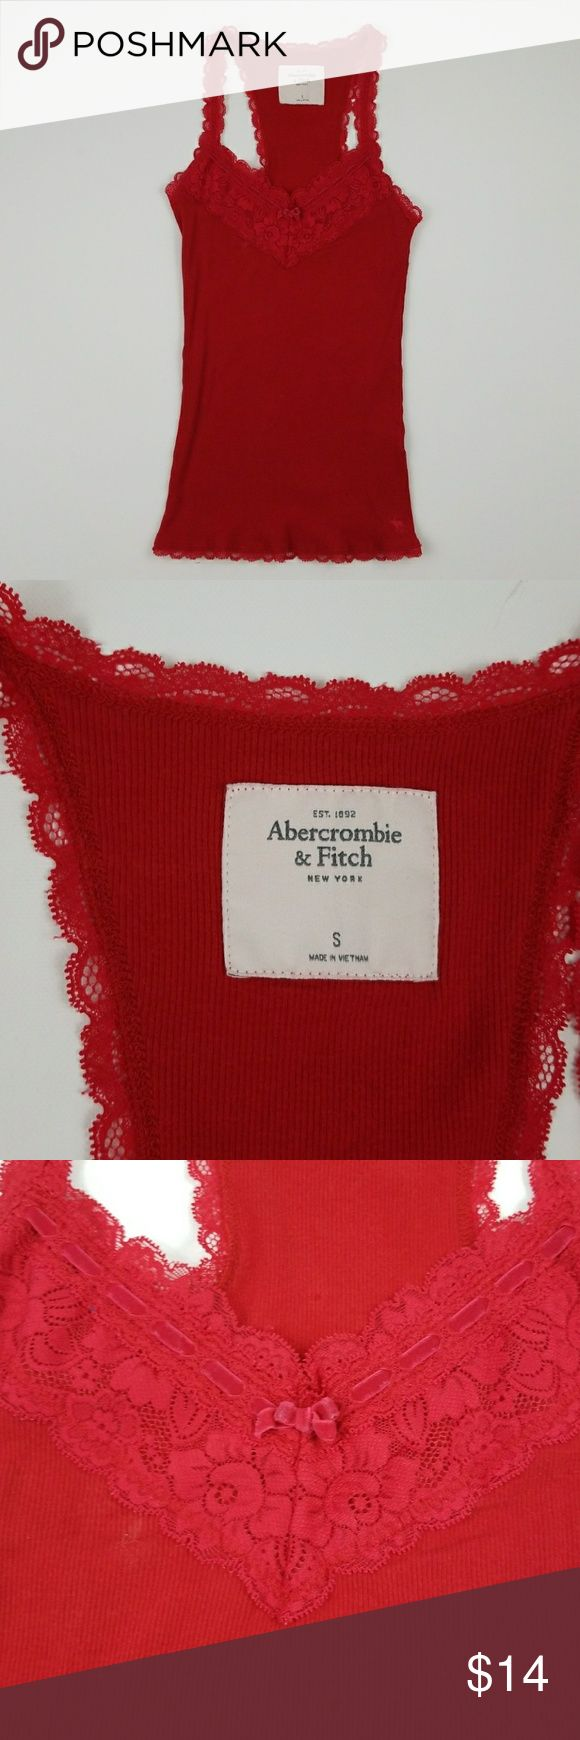 Abercrombie and Fitch Tank Size small lacey red tank by Abercrombie and Fitch. Great condition. Abercrombie & Fitch Tops Tank Tops